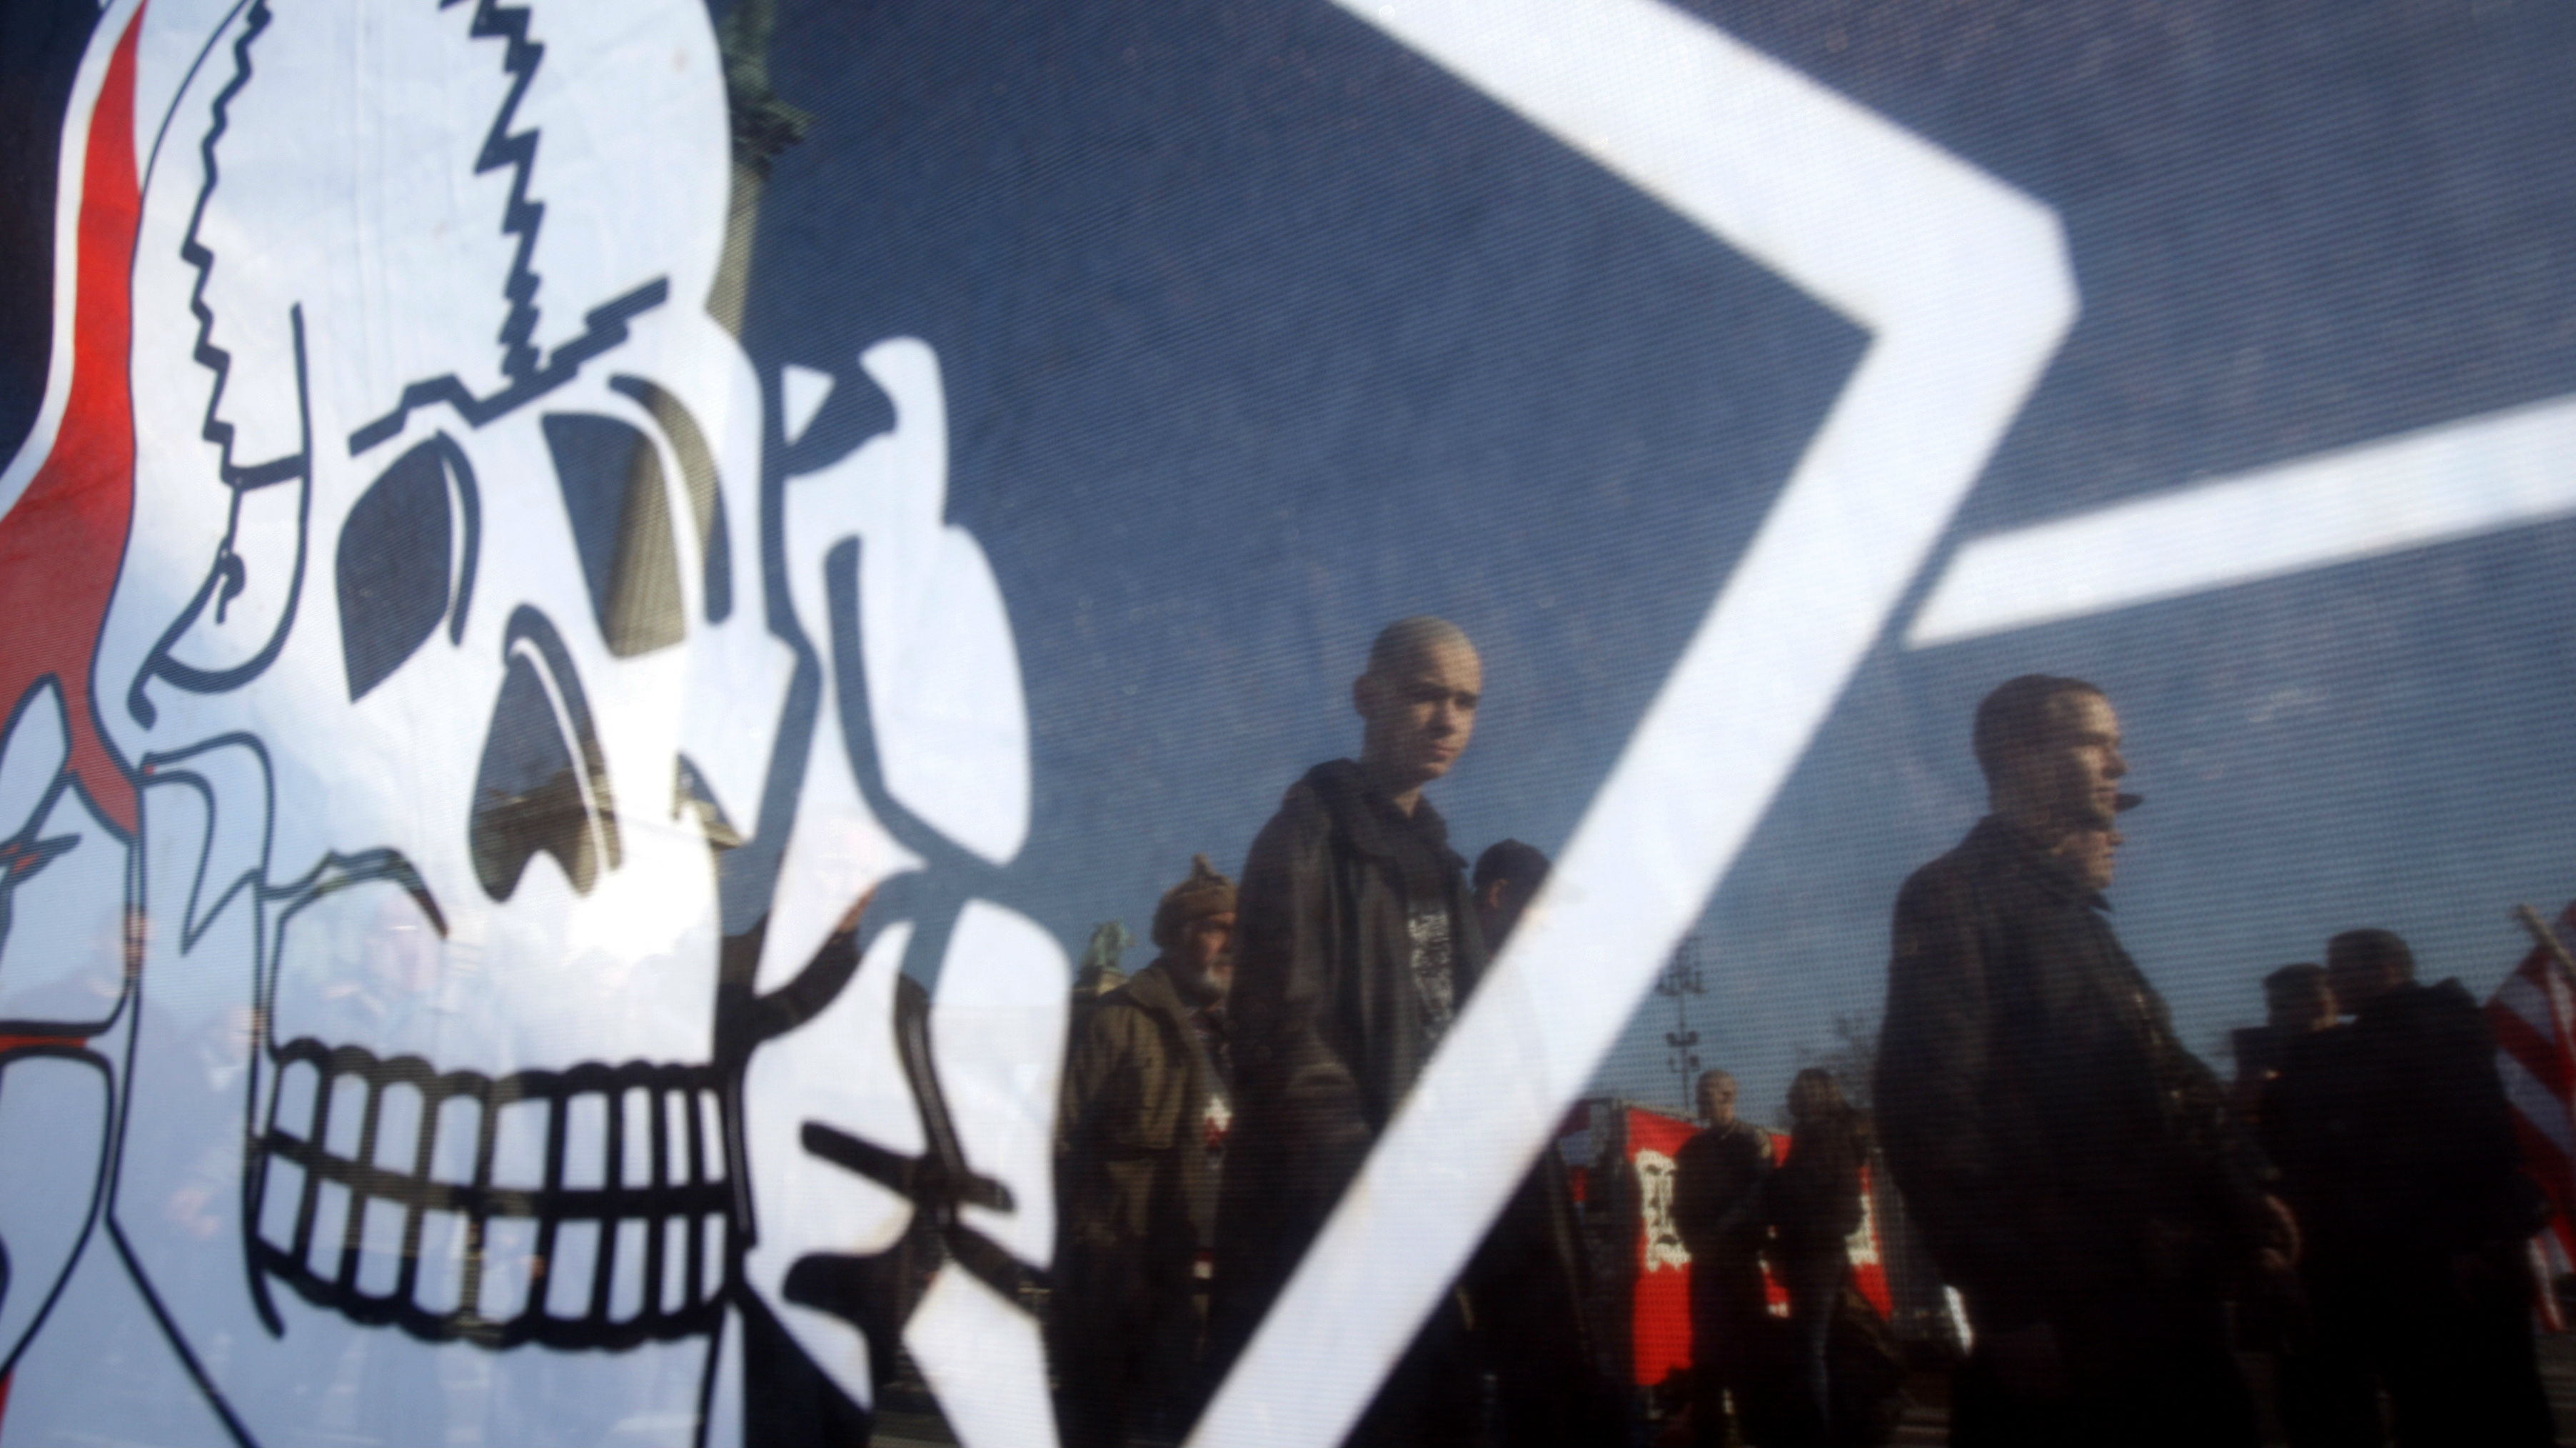 Twenty years ago today the leader of the UK's far-right skinhead movement, Ian Stuart Donaldson, died in a car crash in Derbyshire. Two decades after his death we look at his cult following.